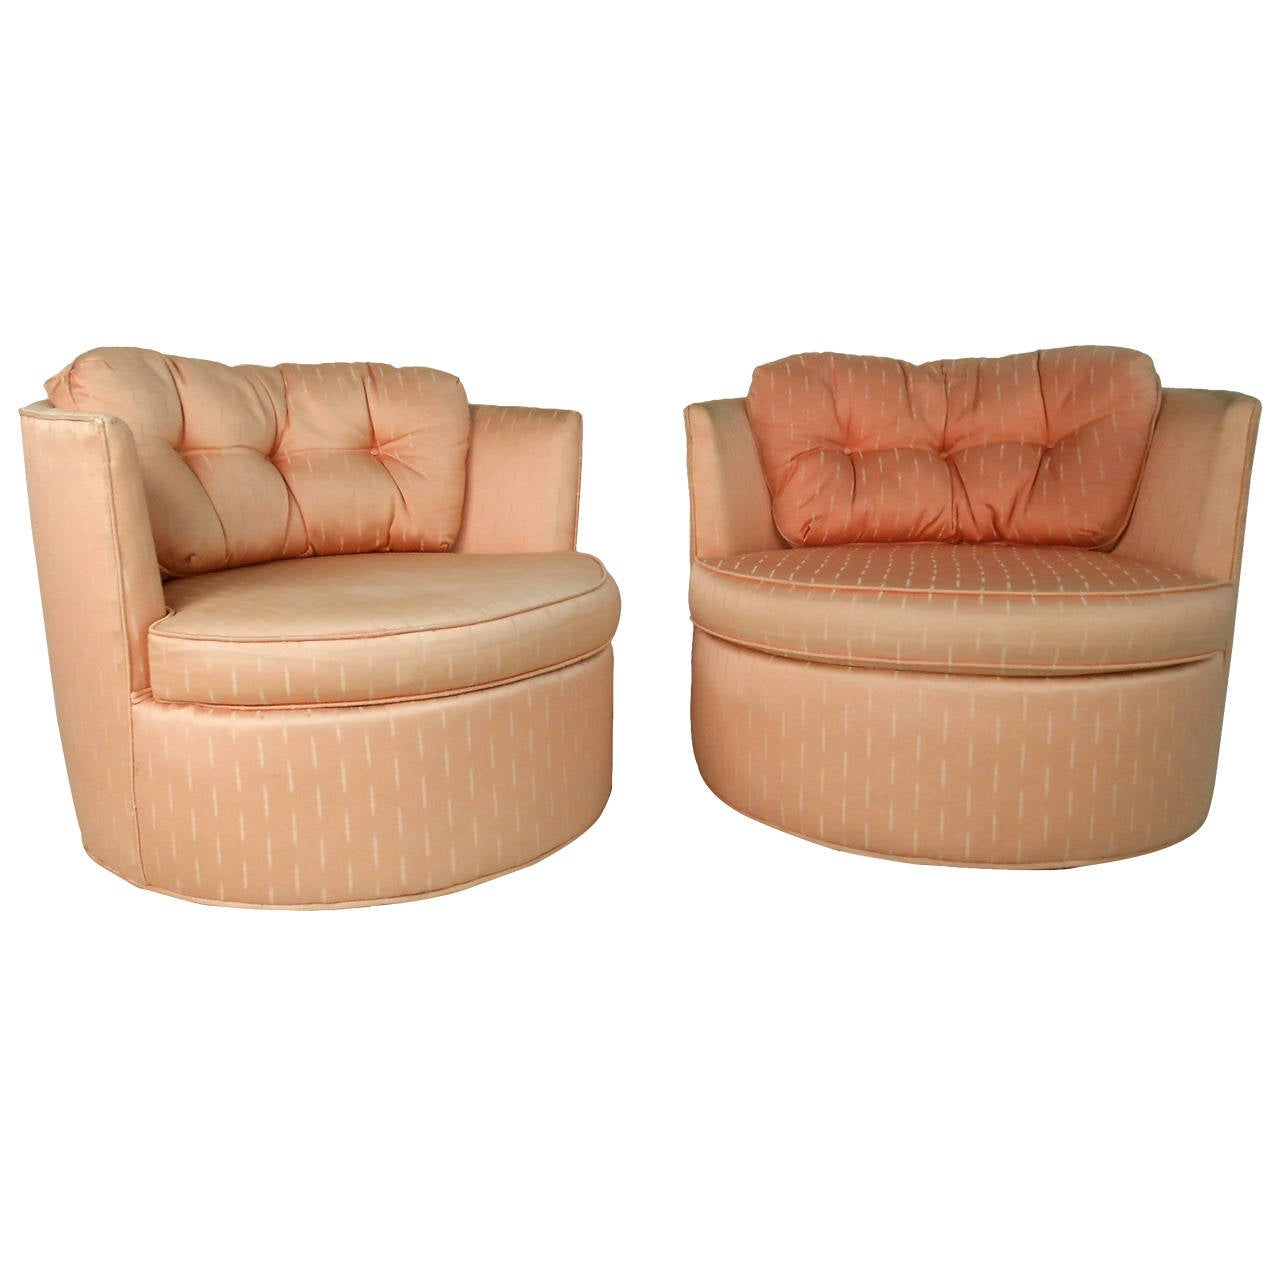 Pair Unique Mid-Century Modern Barrel Back Swivel Chairs